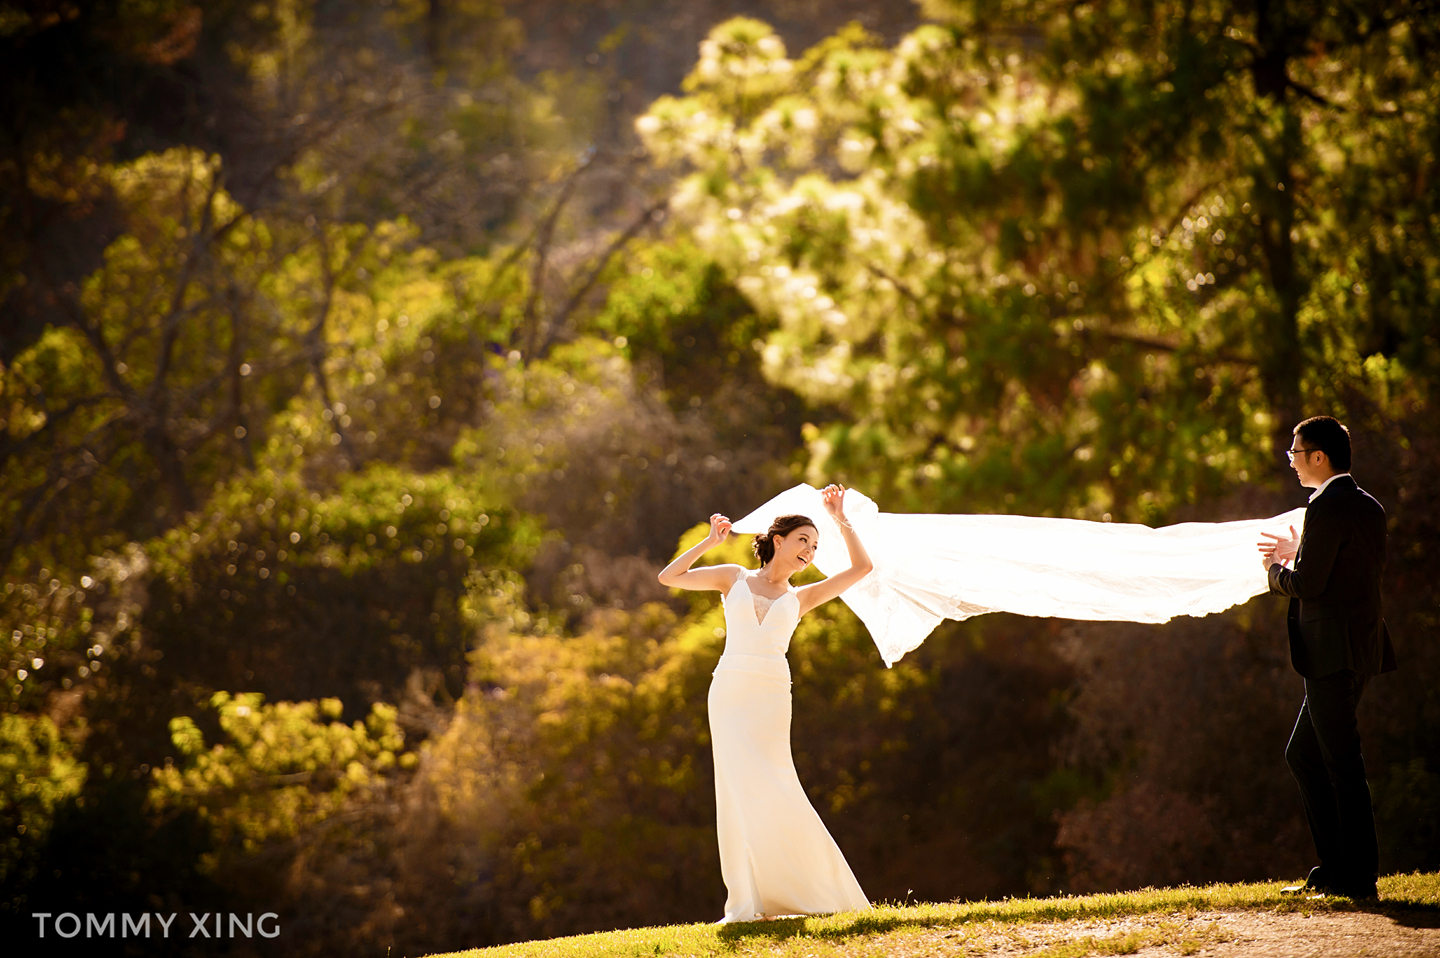 Los Angeles per-wedding 洛杉矶婚纱照 by Tommy Xing Photography 09.jpg